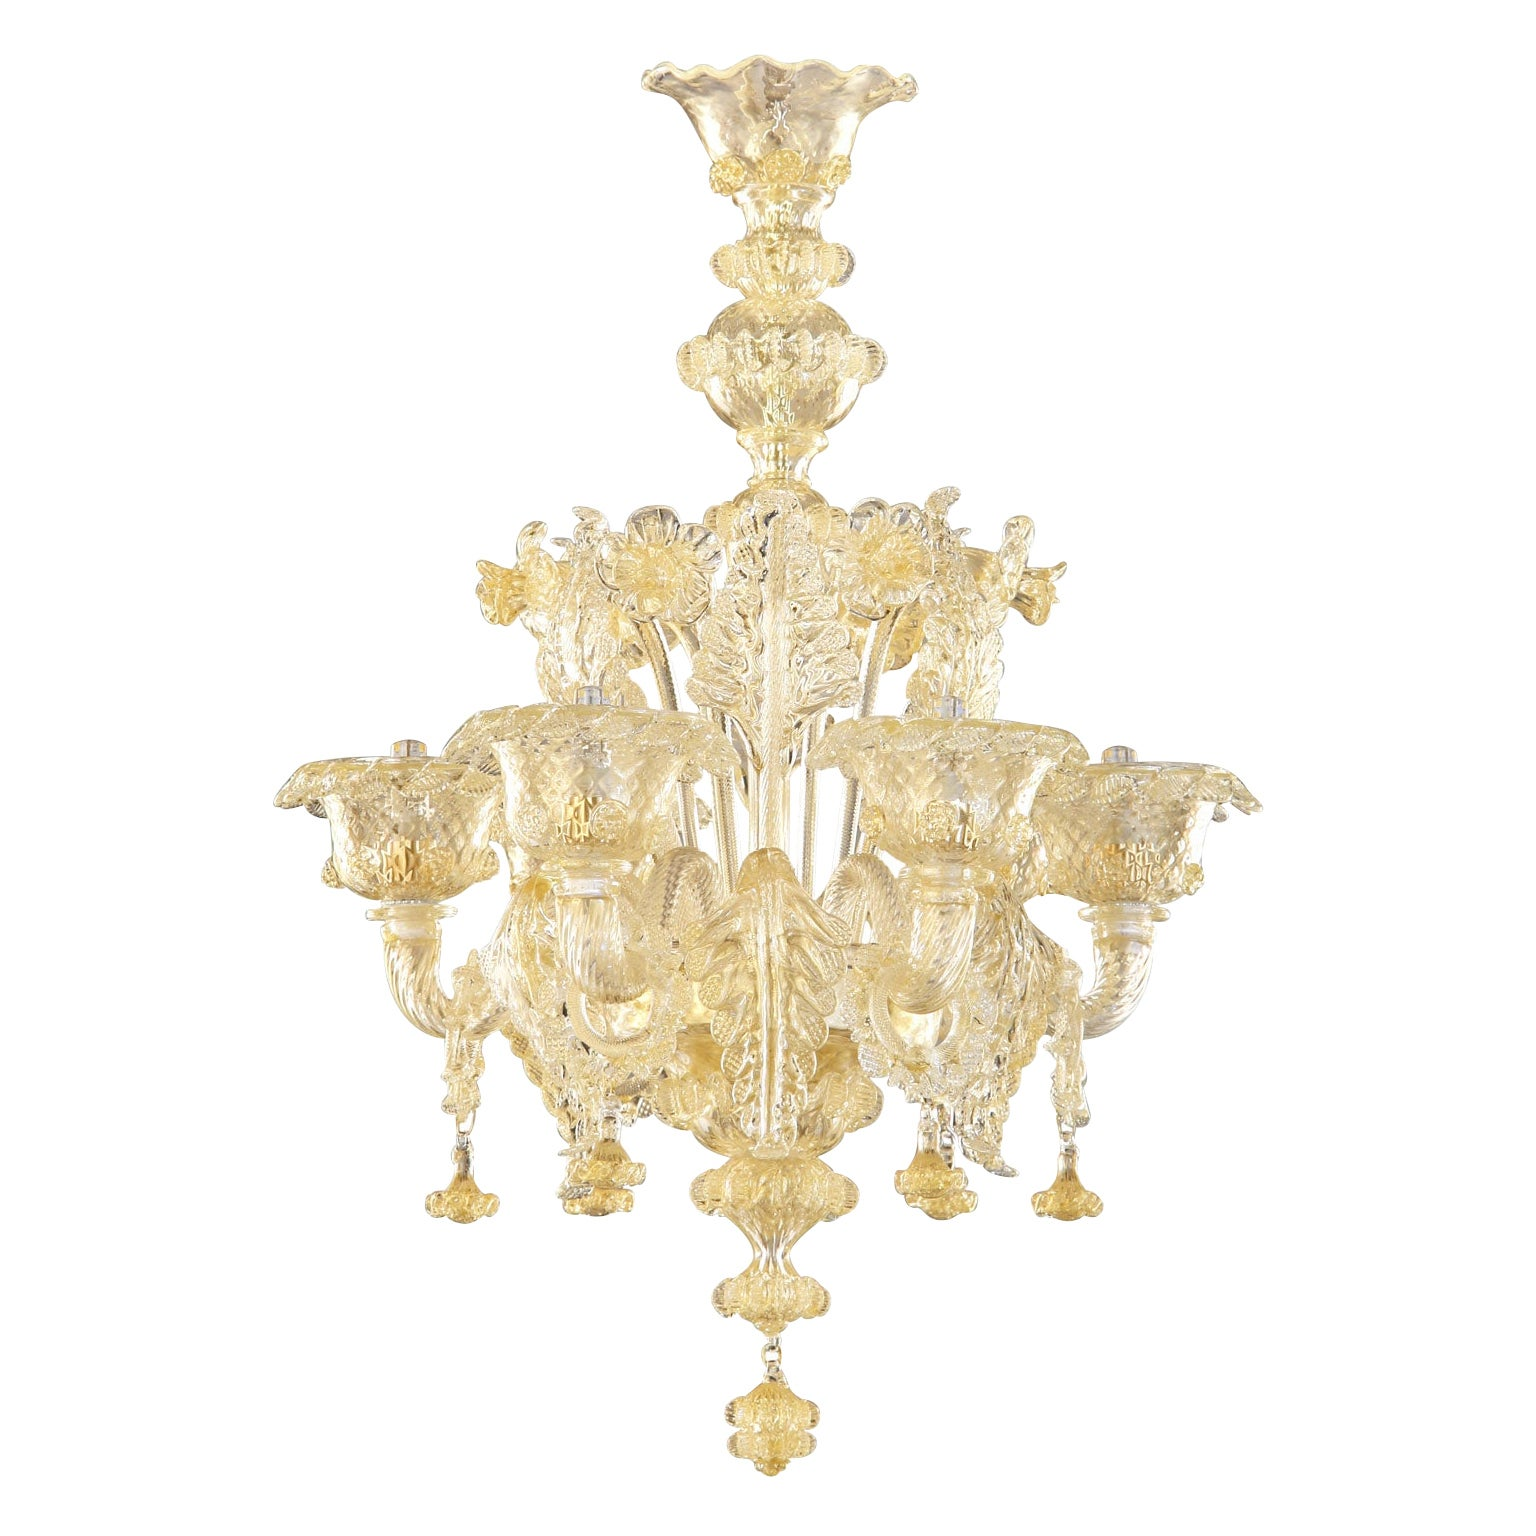 Artistic rich Chandelier 6 arms Crystal Murano Glass, Gold Details by Multiforme